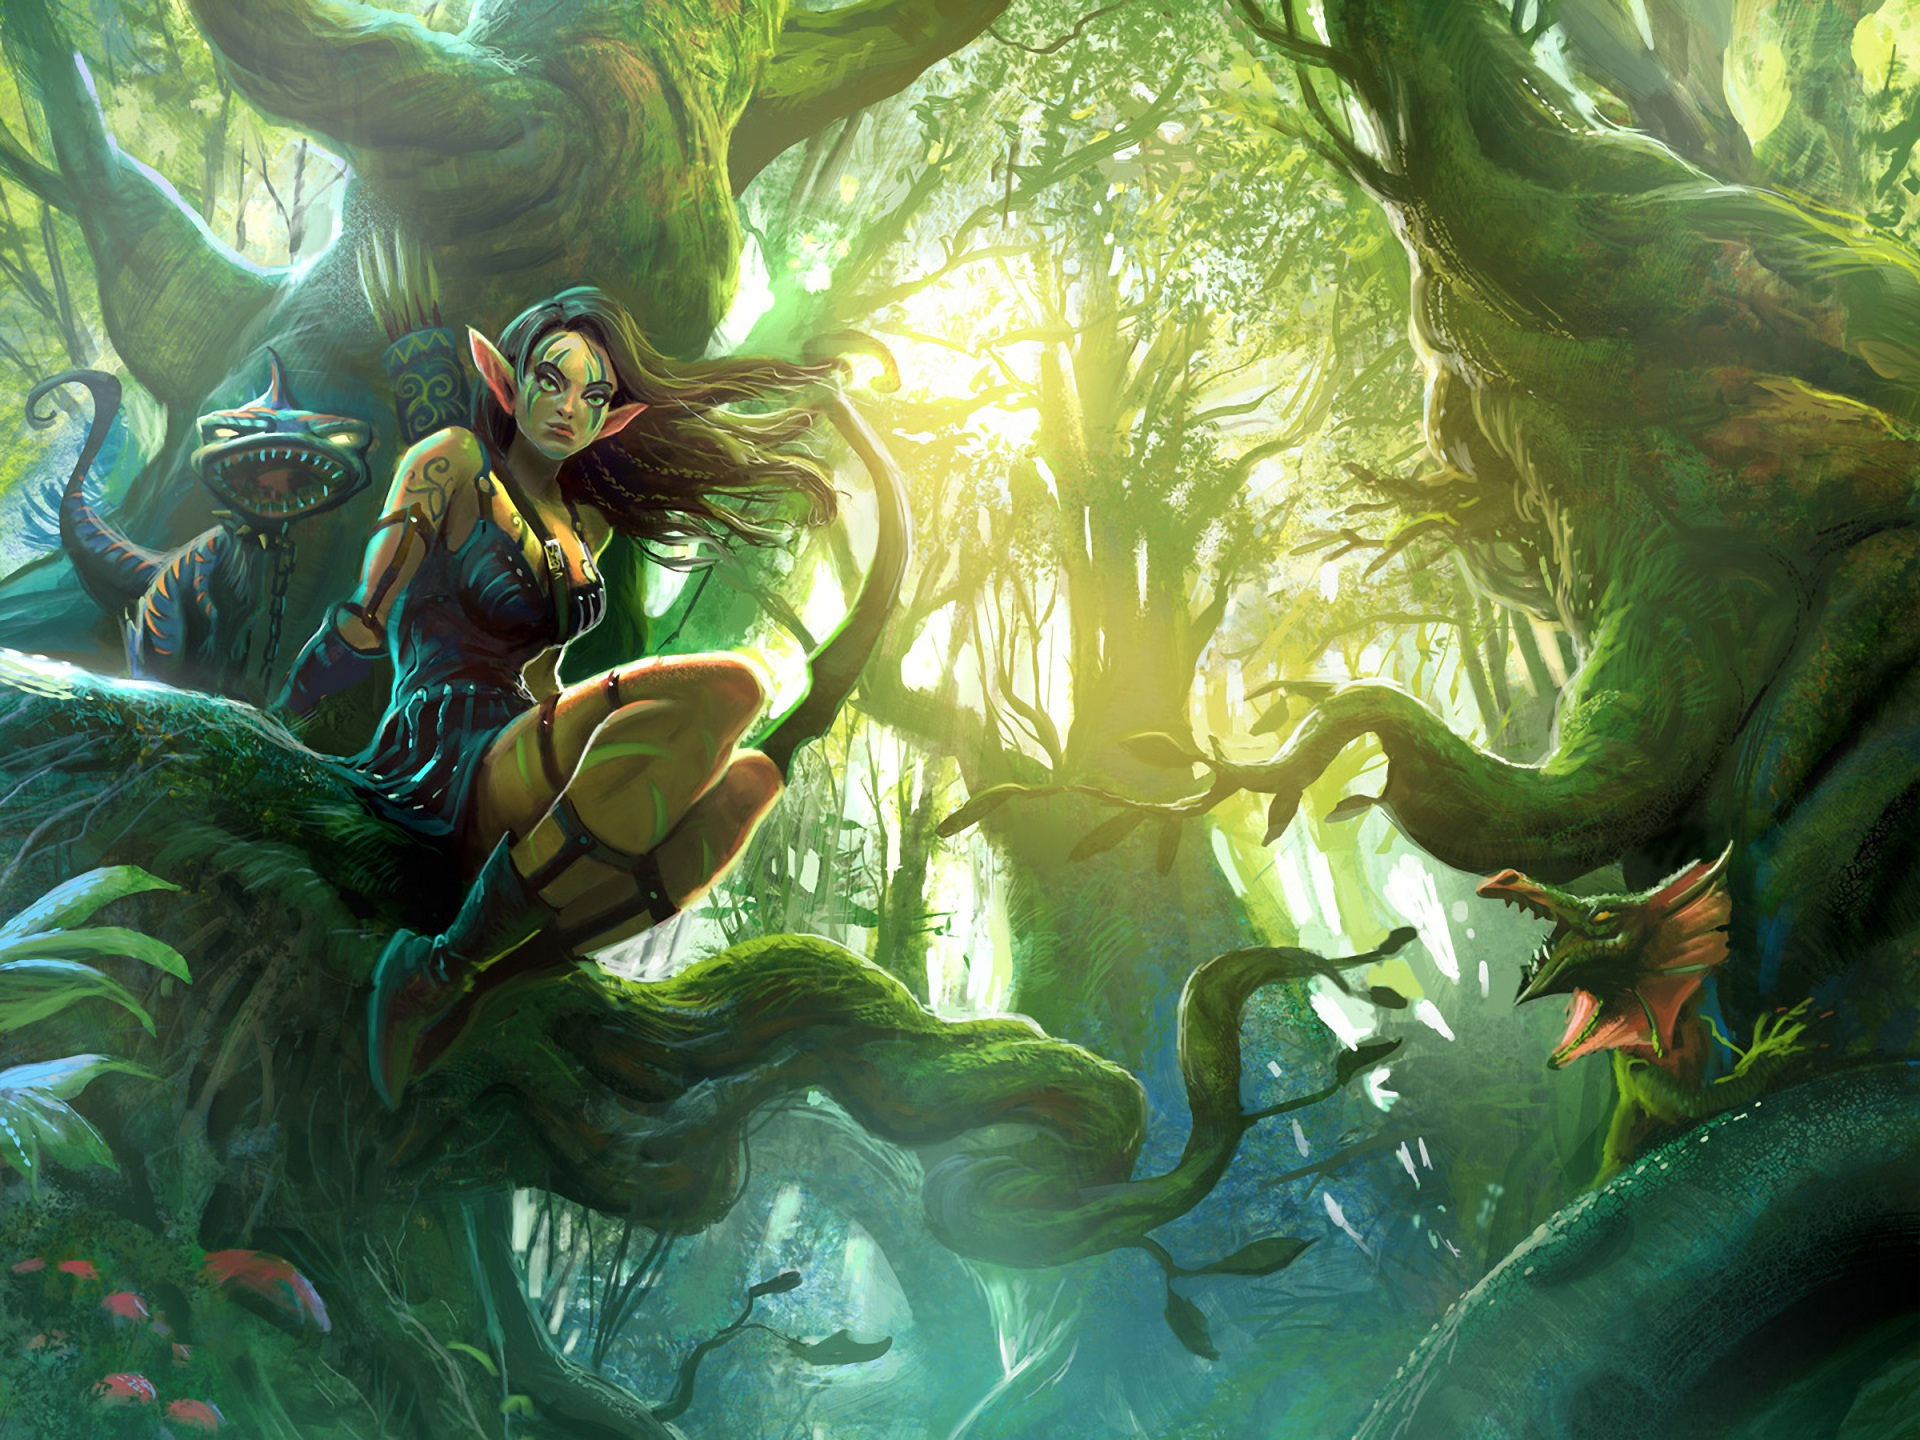 Fantasy-elves-girl-in-the-forest_1920x1440